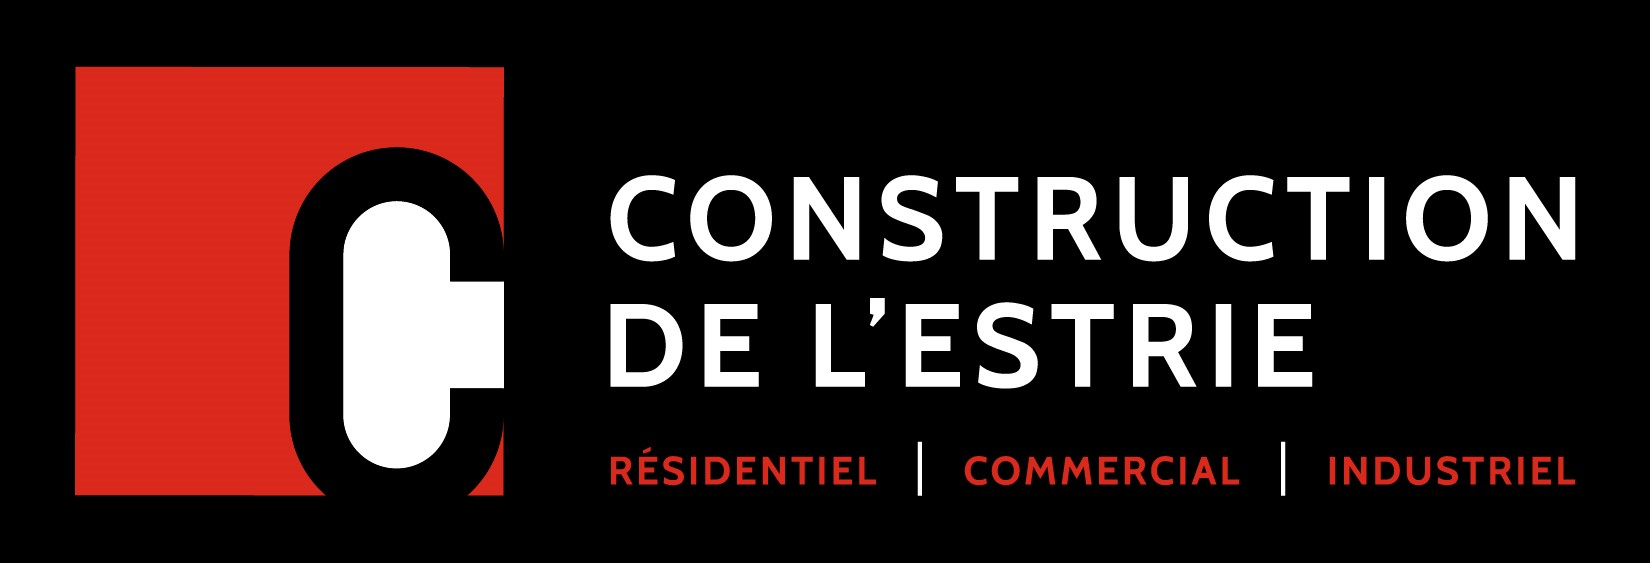 Construction de l'Estrie